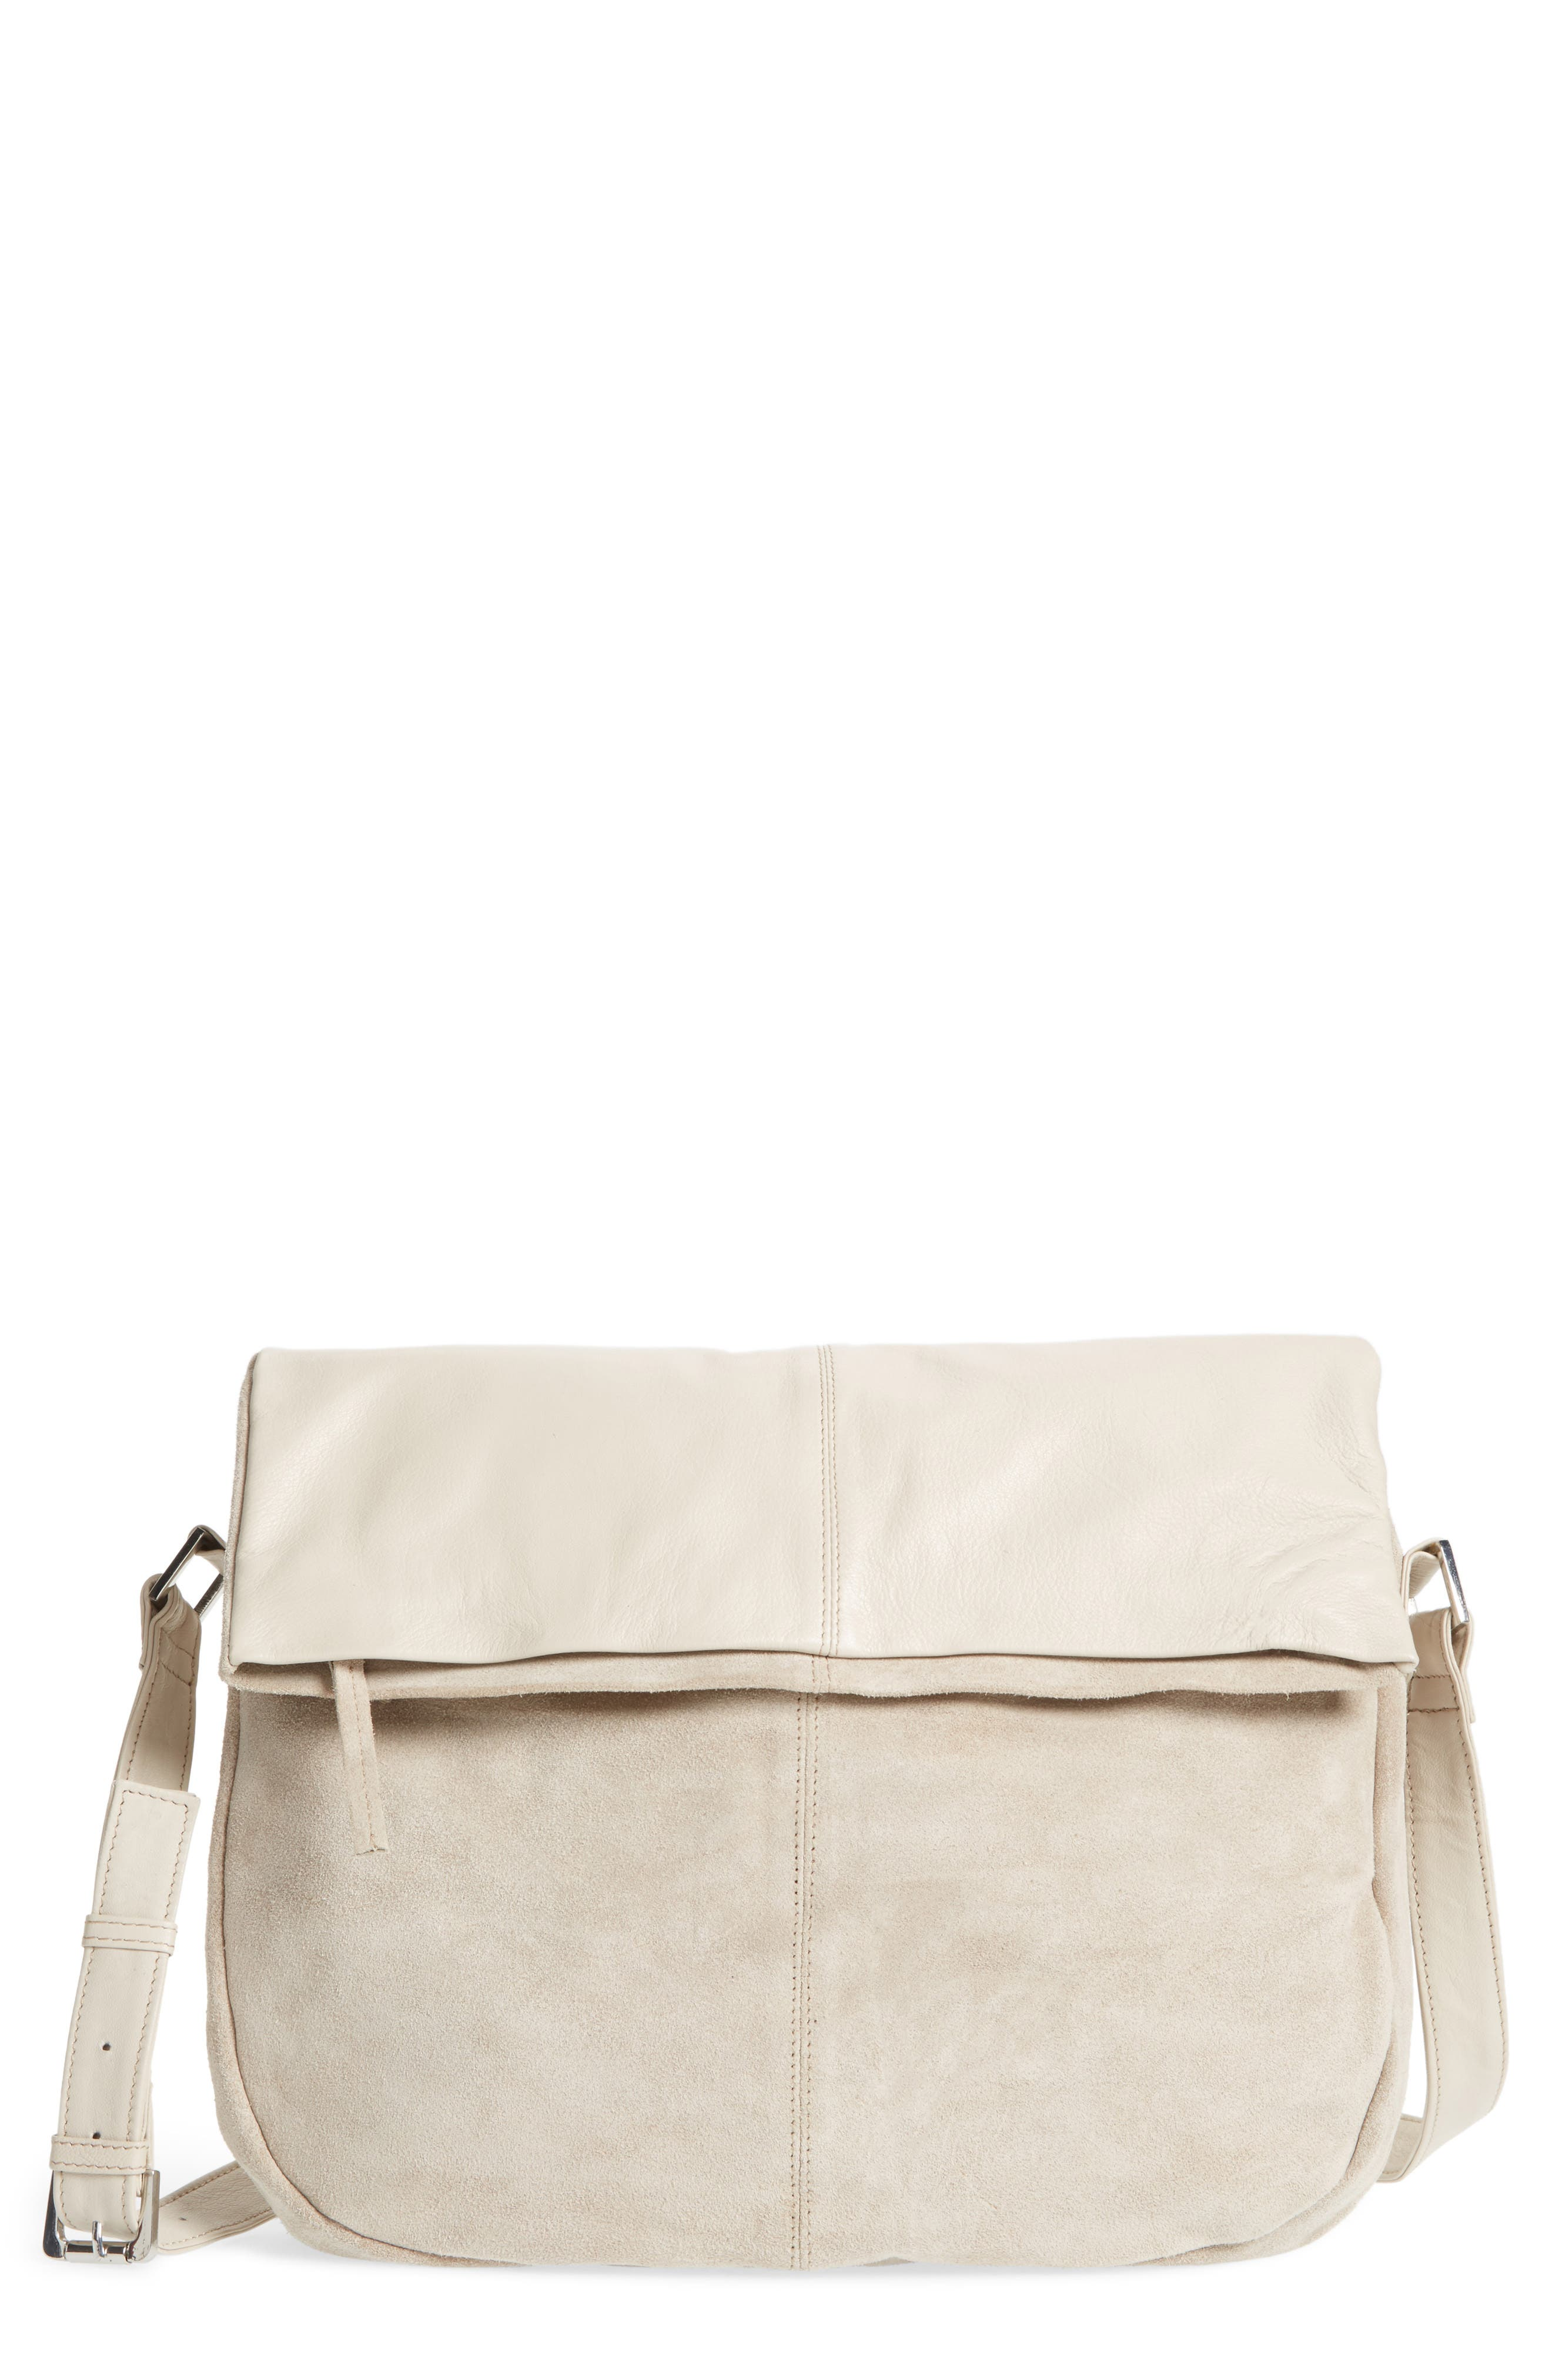 TOPSHOP Sam Leather & Suede Shoulder Bag